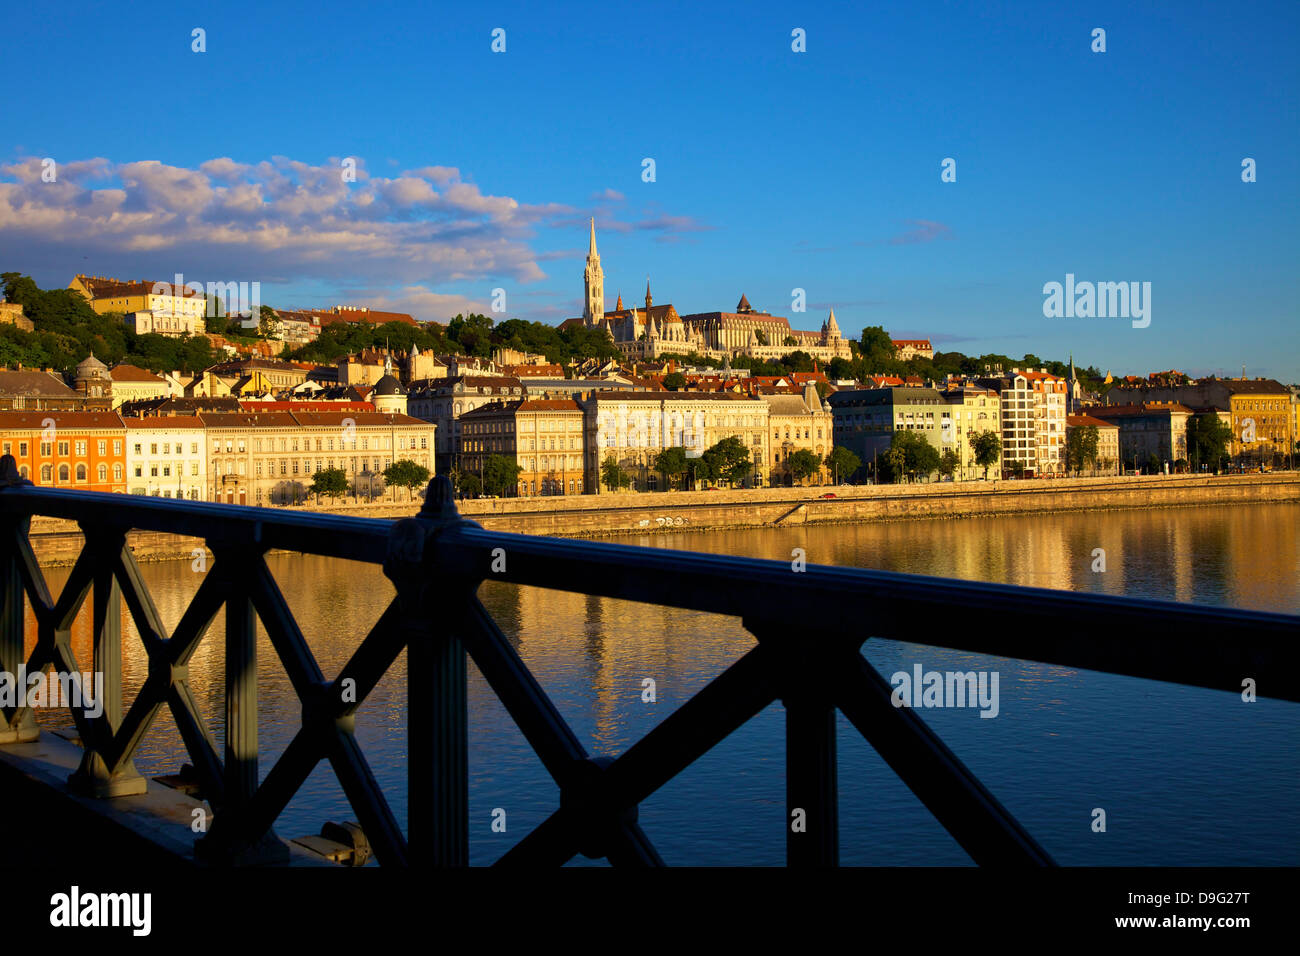 Chain Bridge, Matyas Church (Matthias Church) and Fisherman's Bastion, Budapest, Hungary - Stock Image